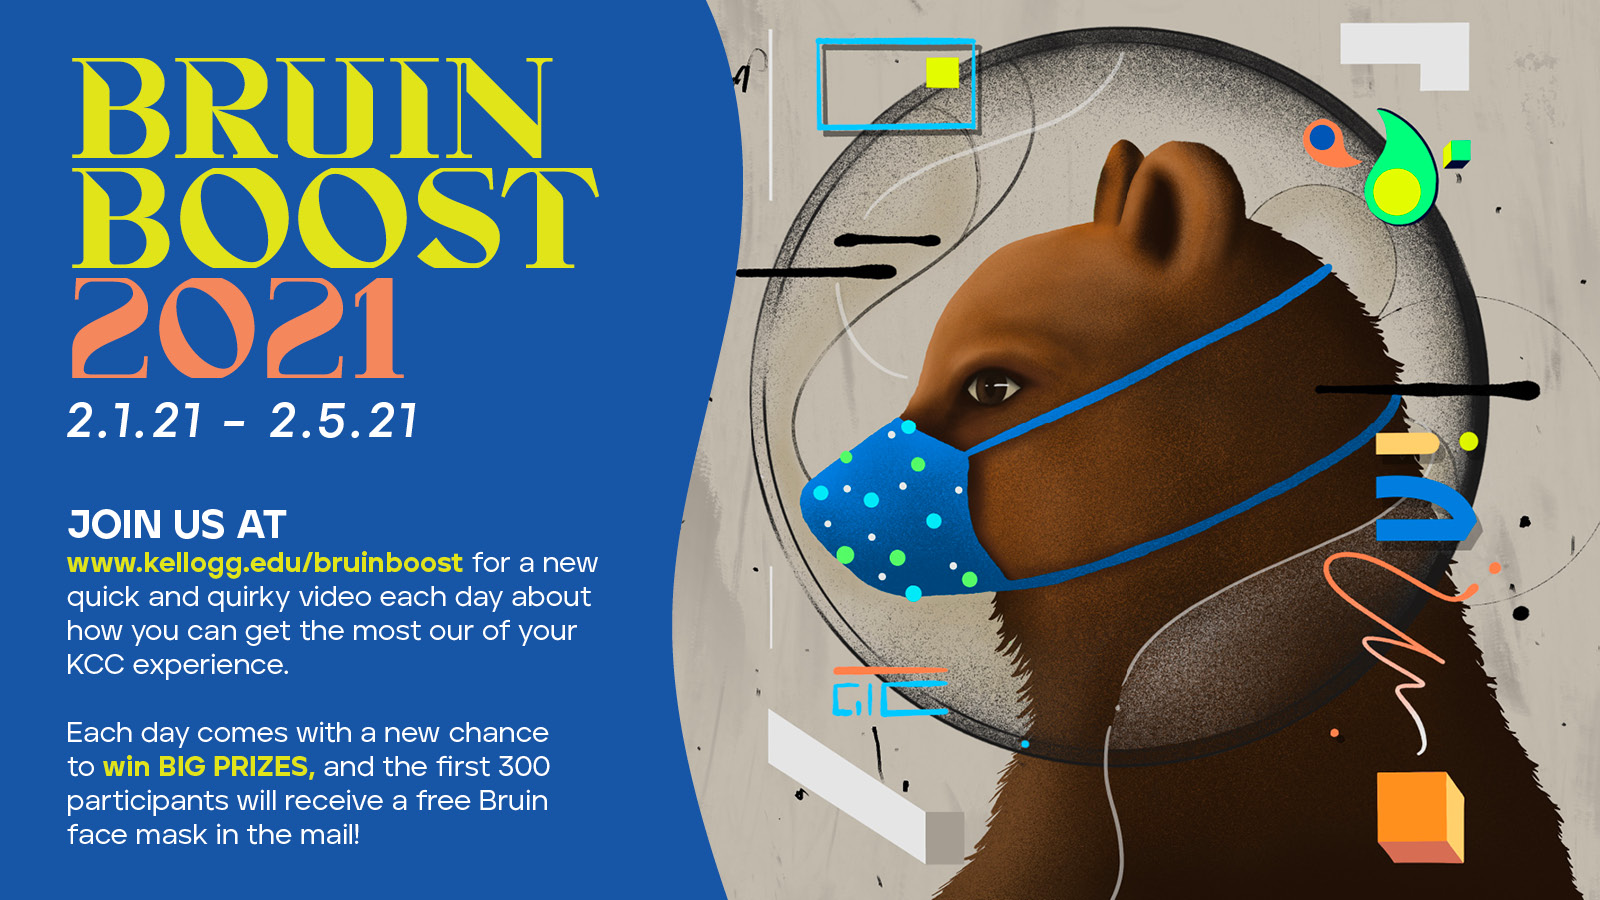 A decorative text slide with Bruin Boost dates and an illustration of Blaze in a face mask.